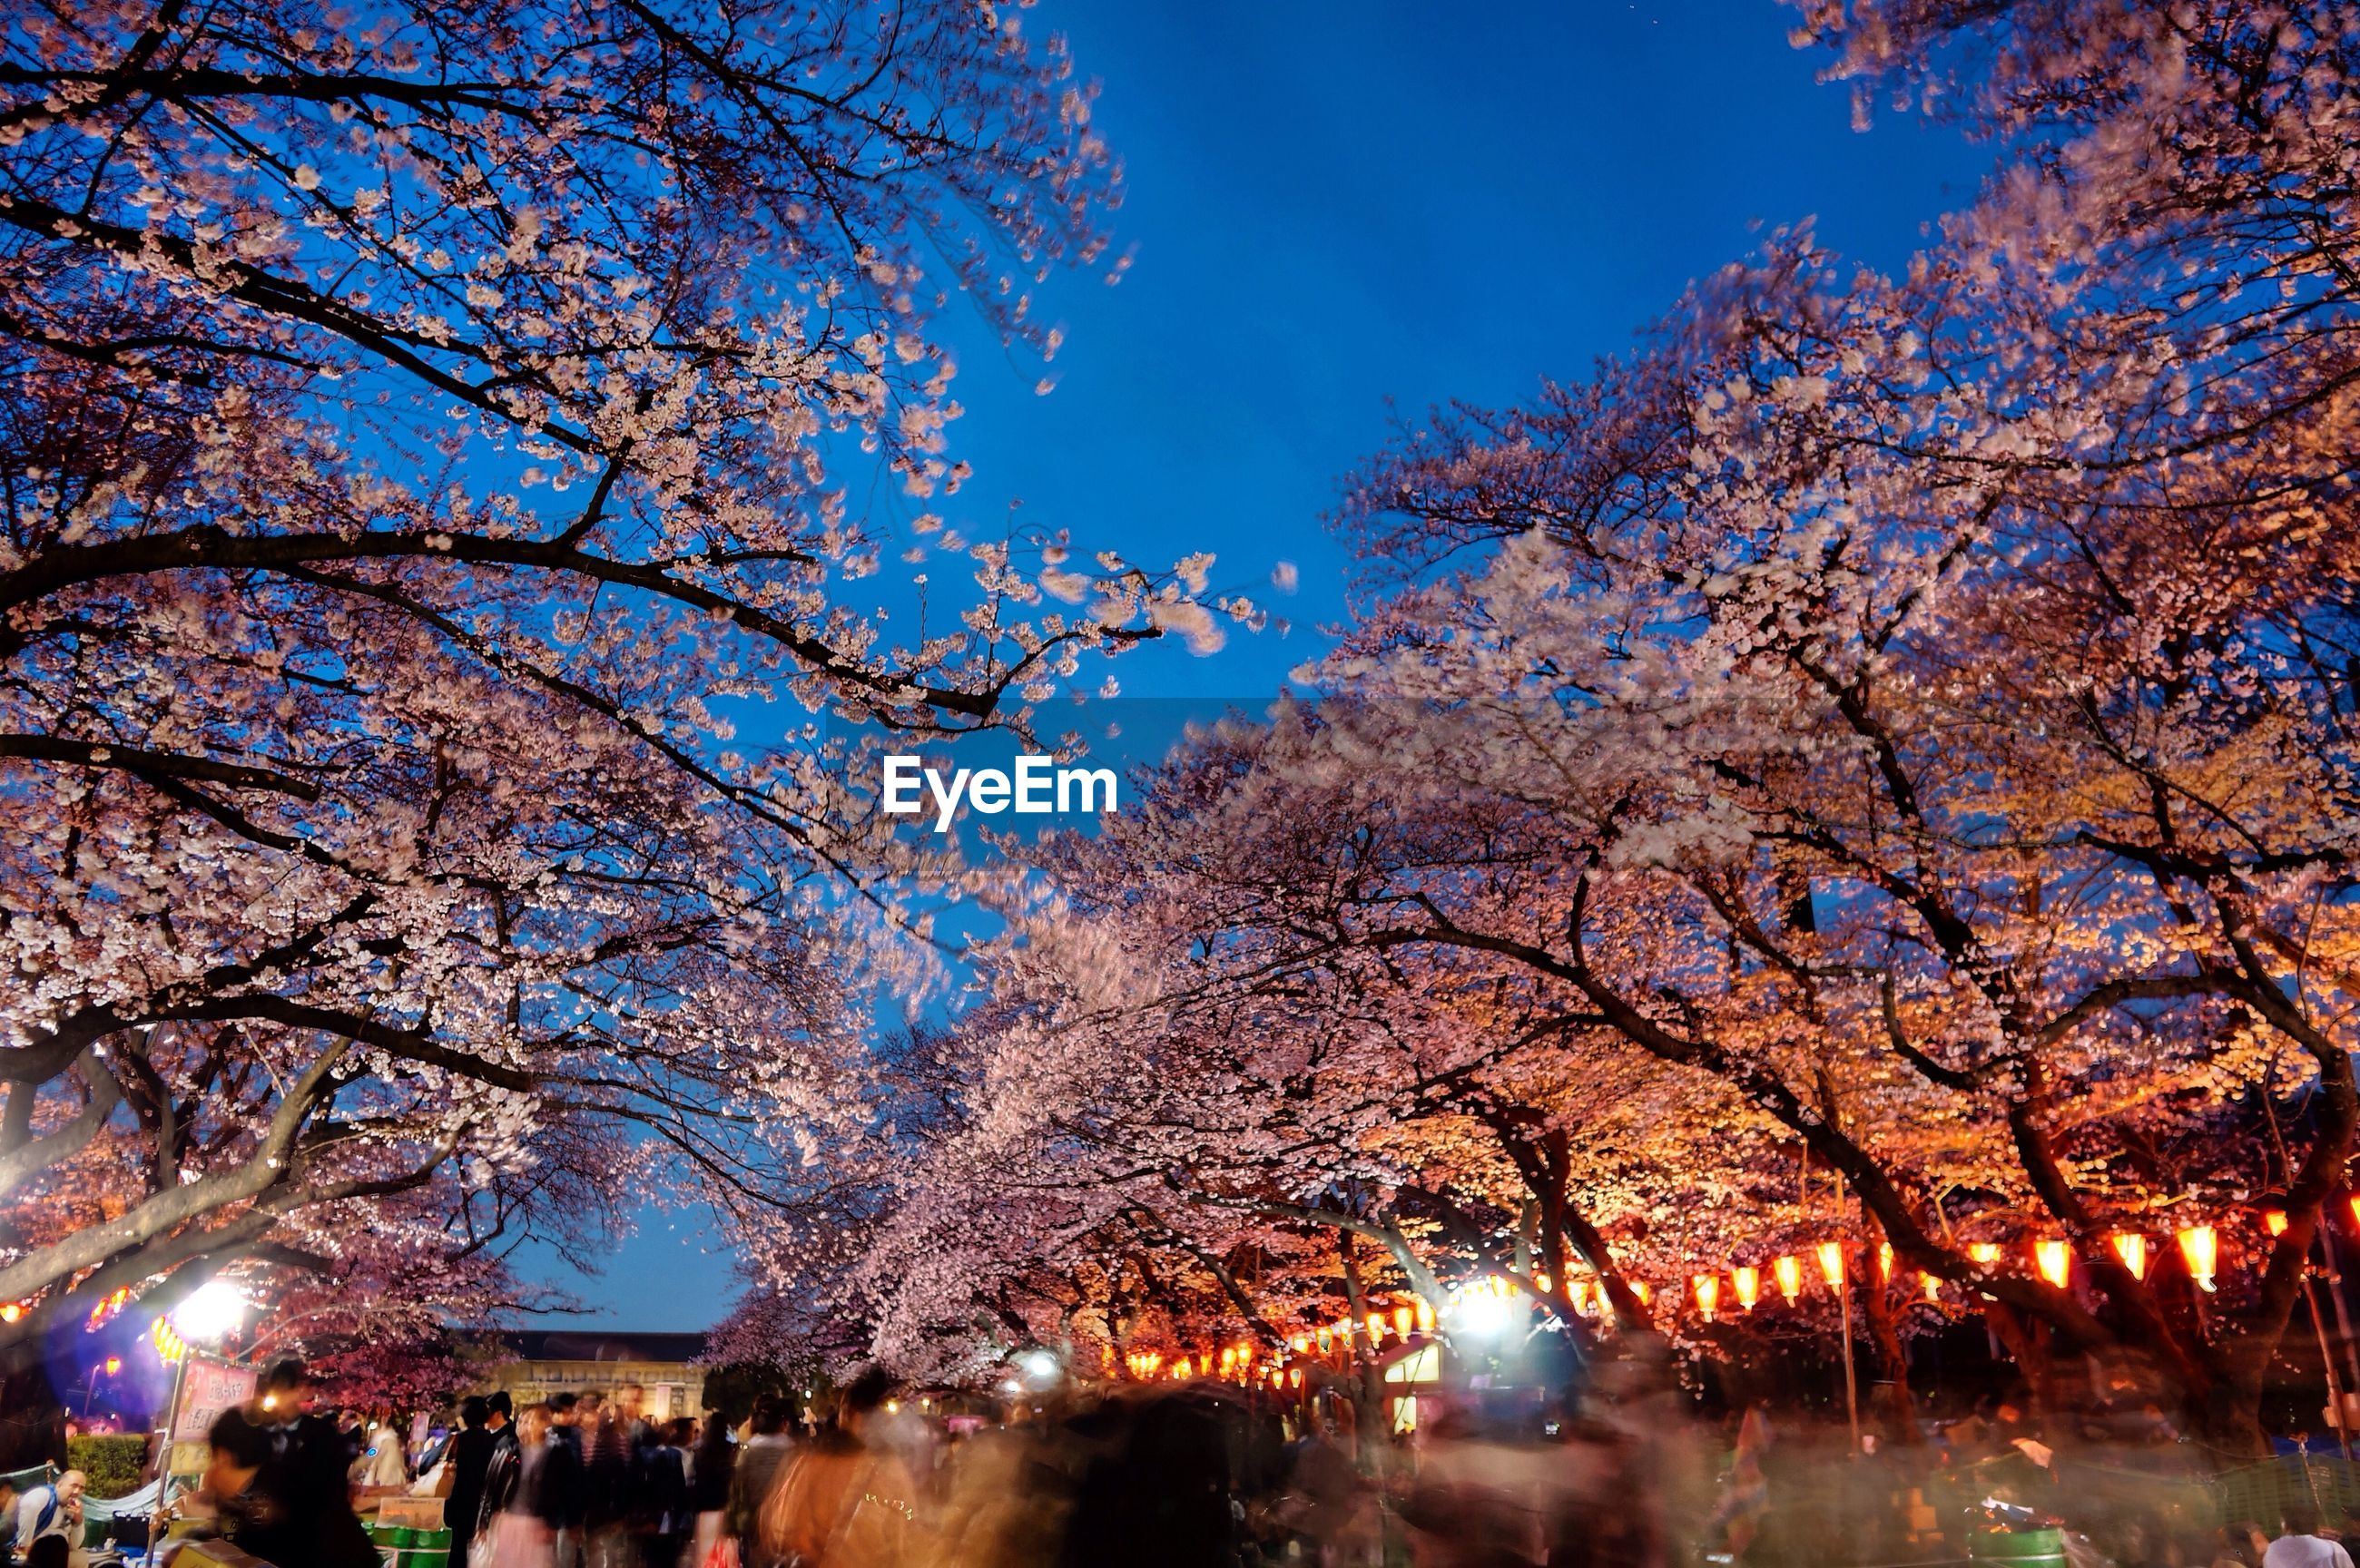 Low angle view of people passing by cherry blossom trees